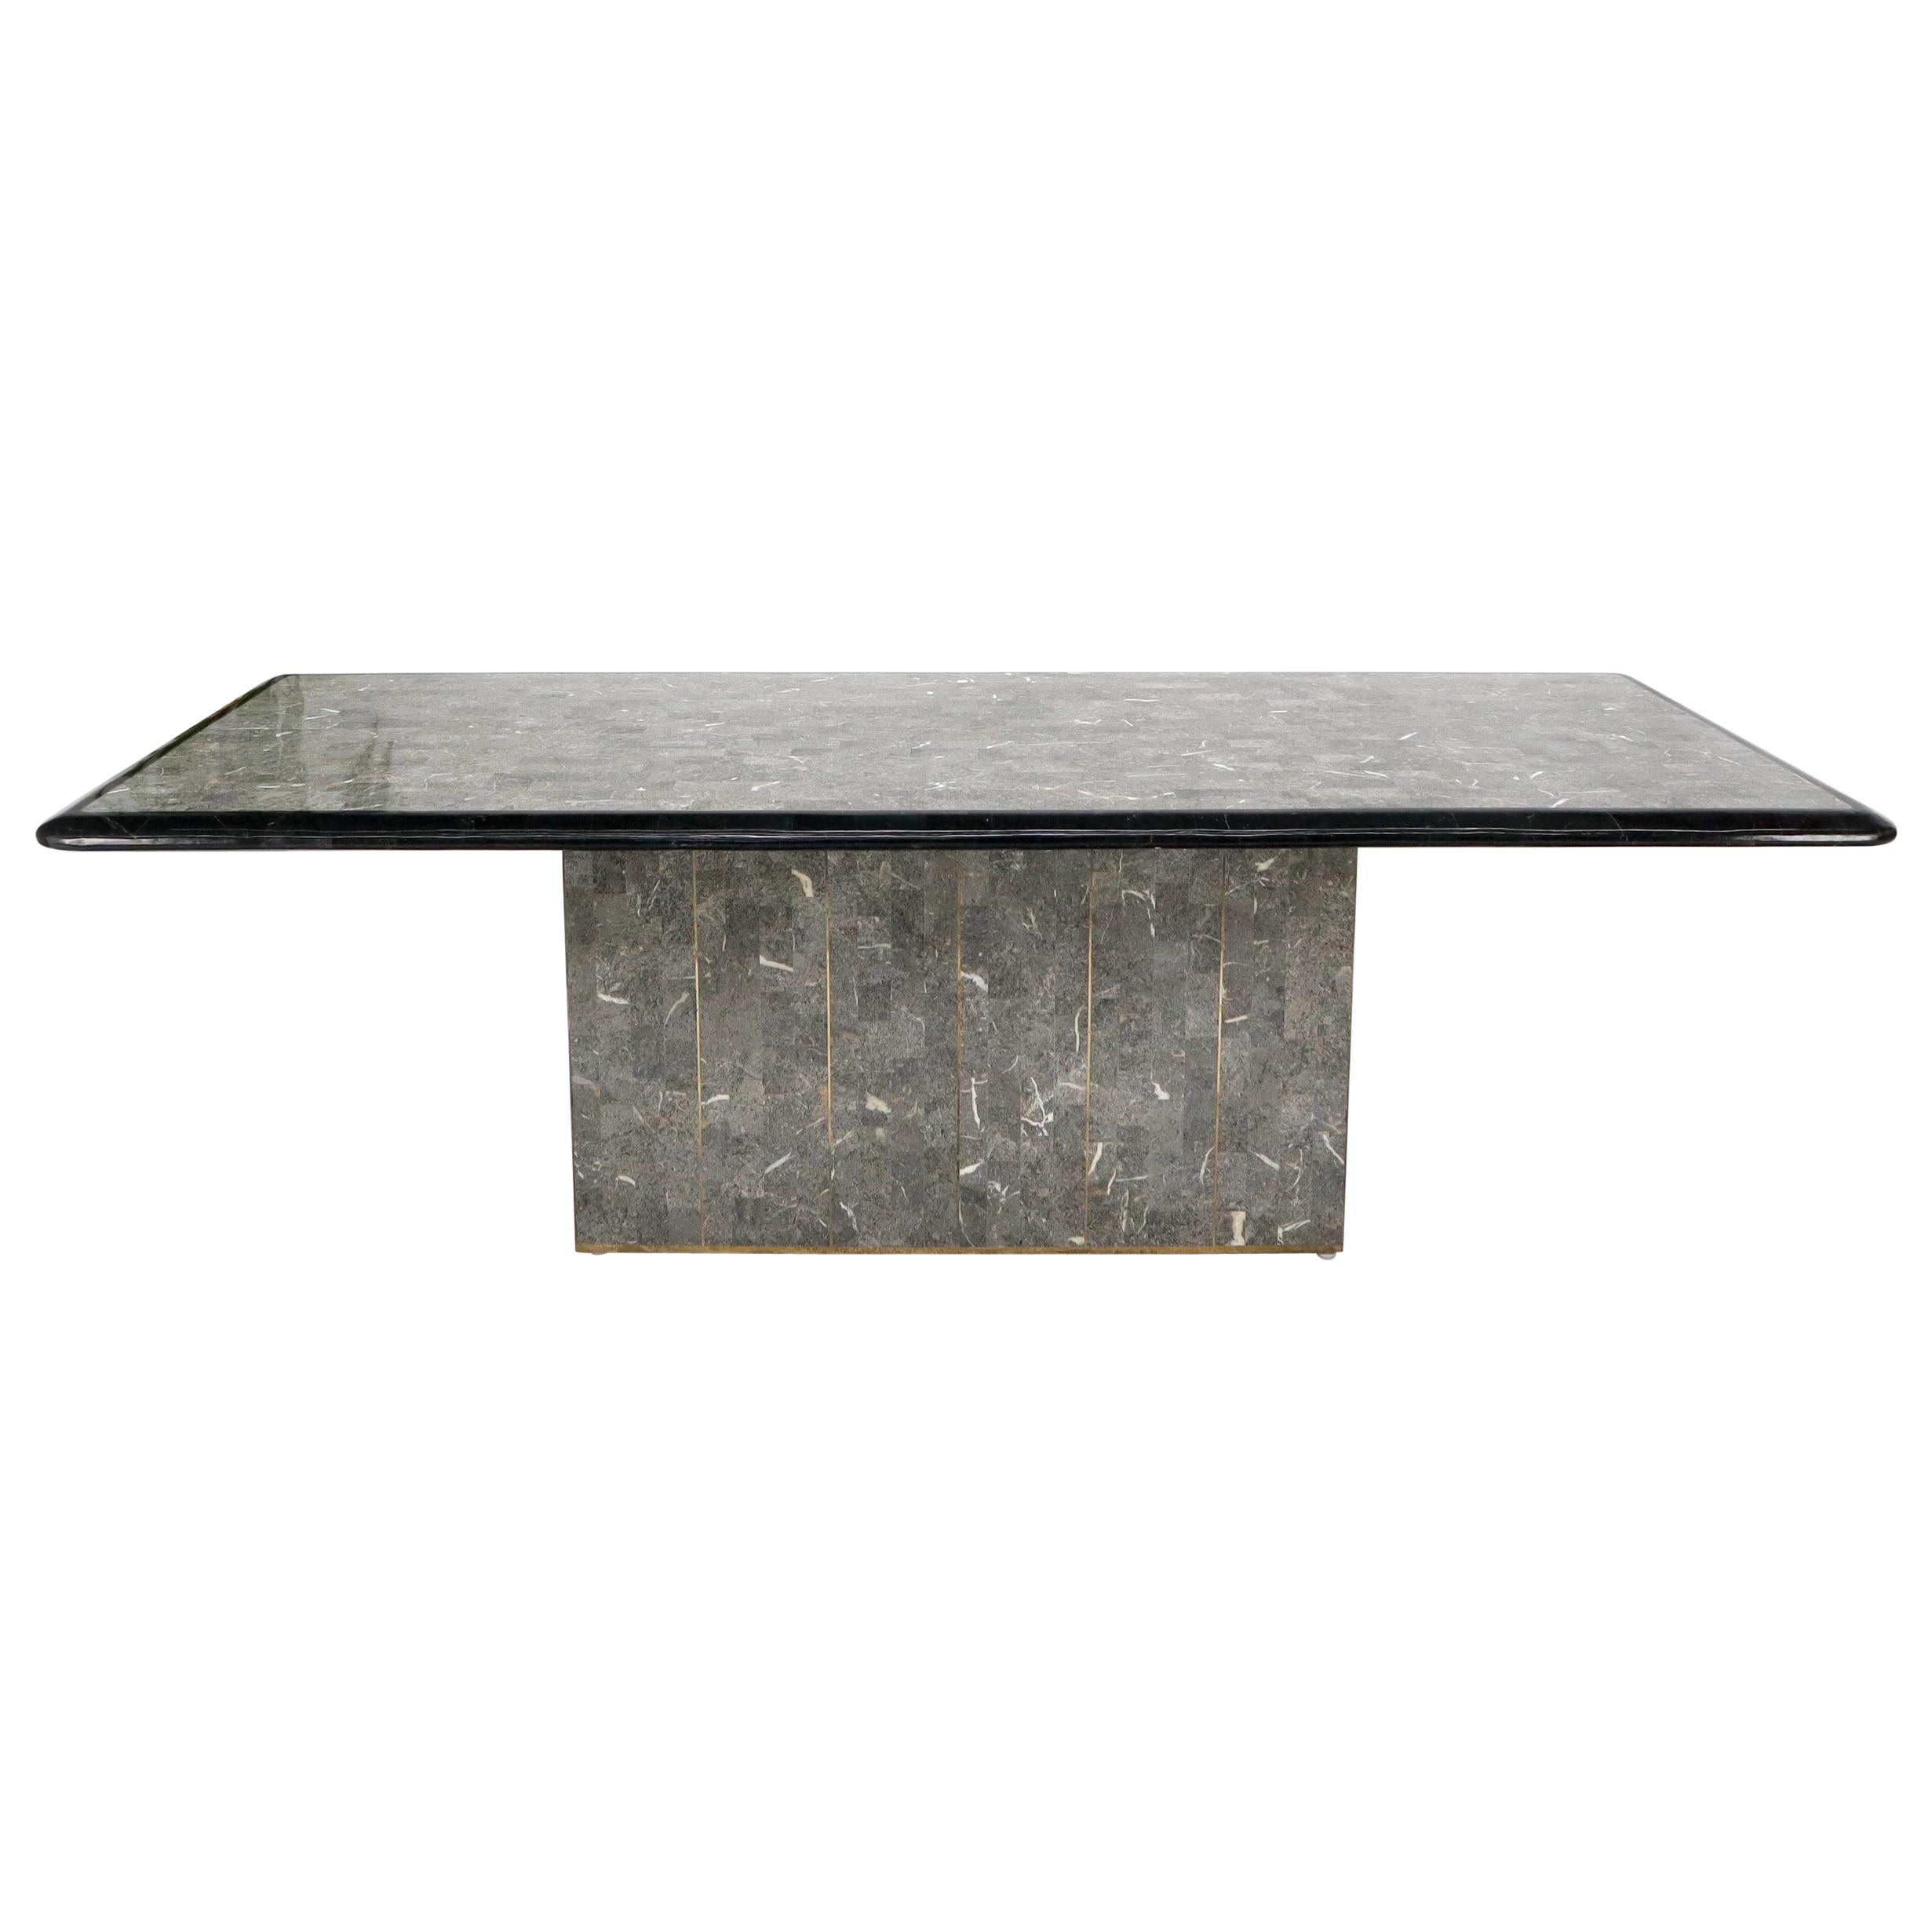 Large Tessellated Black & Grey Stone Brass Inlay Dining Table